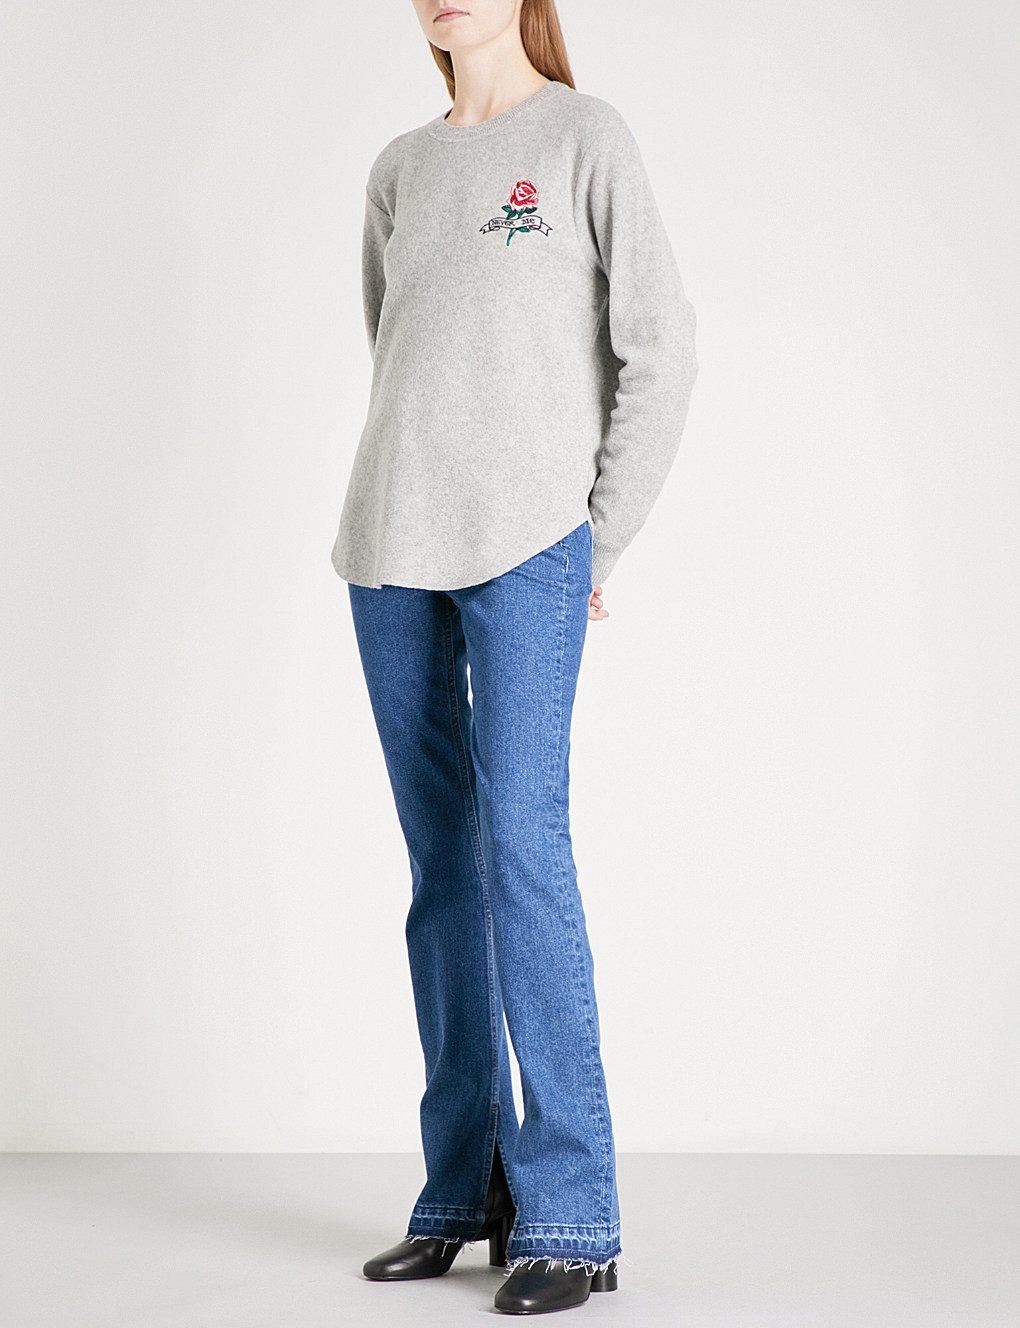 【海外限定】sandroセーター☆Rose-embroidered wool sweatshirt